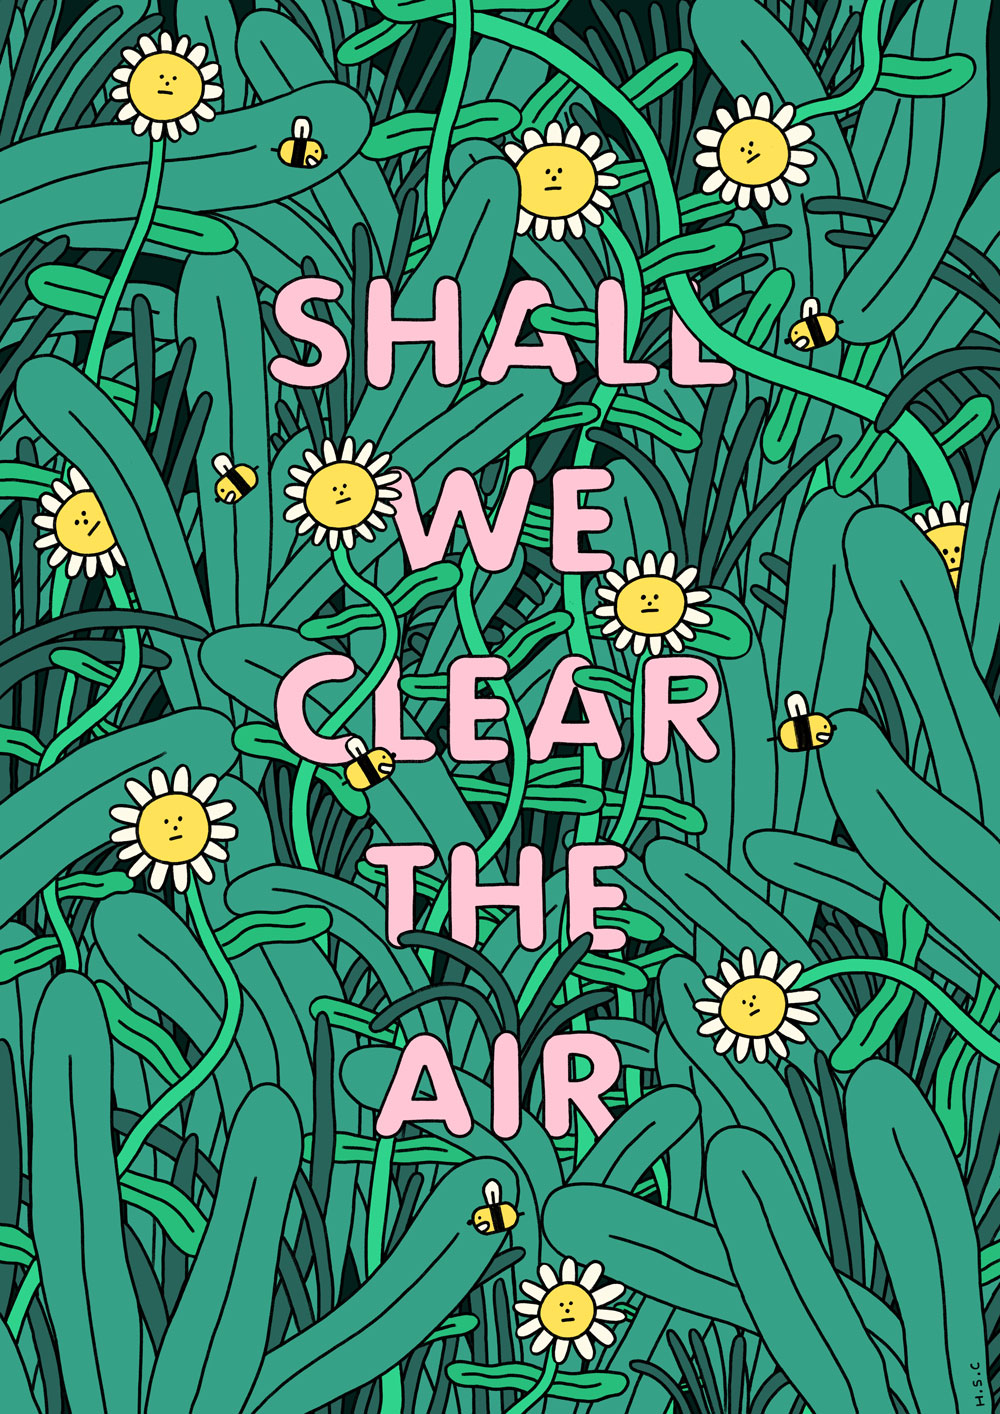 The text reads 'Shall we clear the air?' The illustration around it shows an overgrown tangle of daisies, bees and grass.